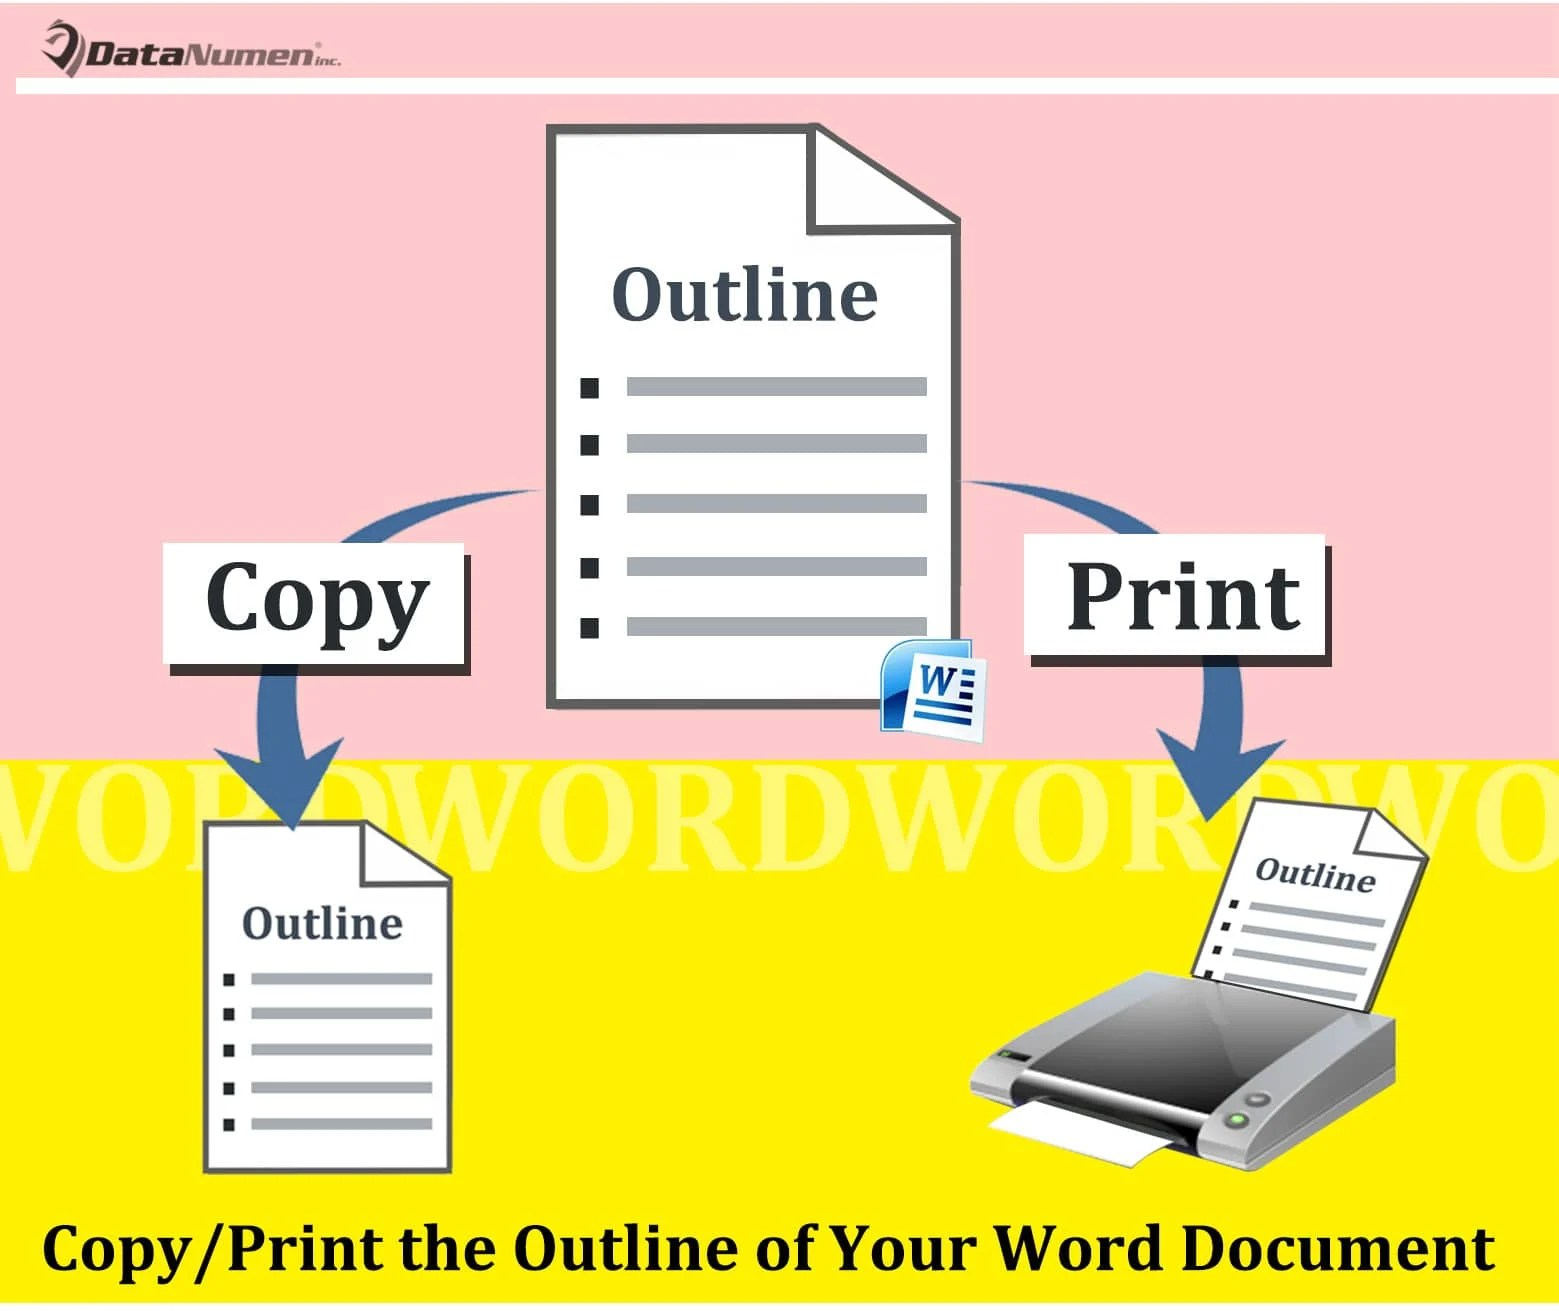 Copy or Print the Outline of Your Word Document